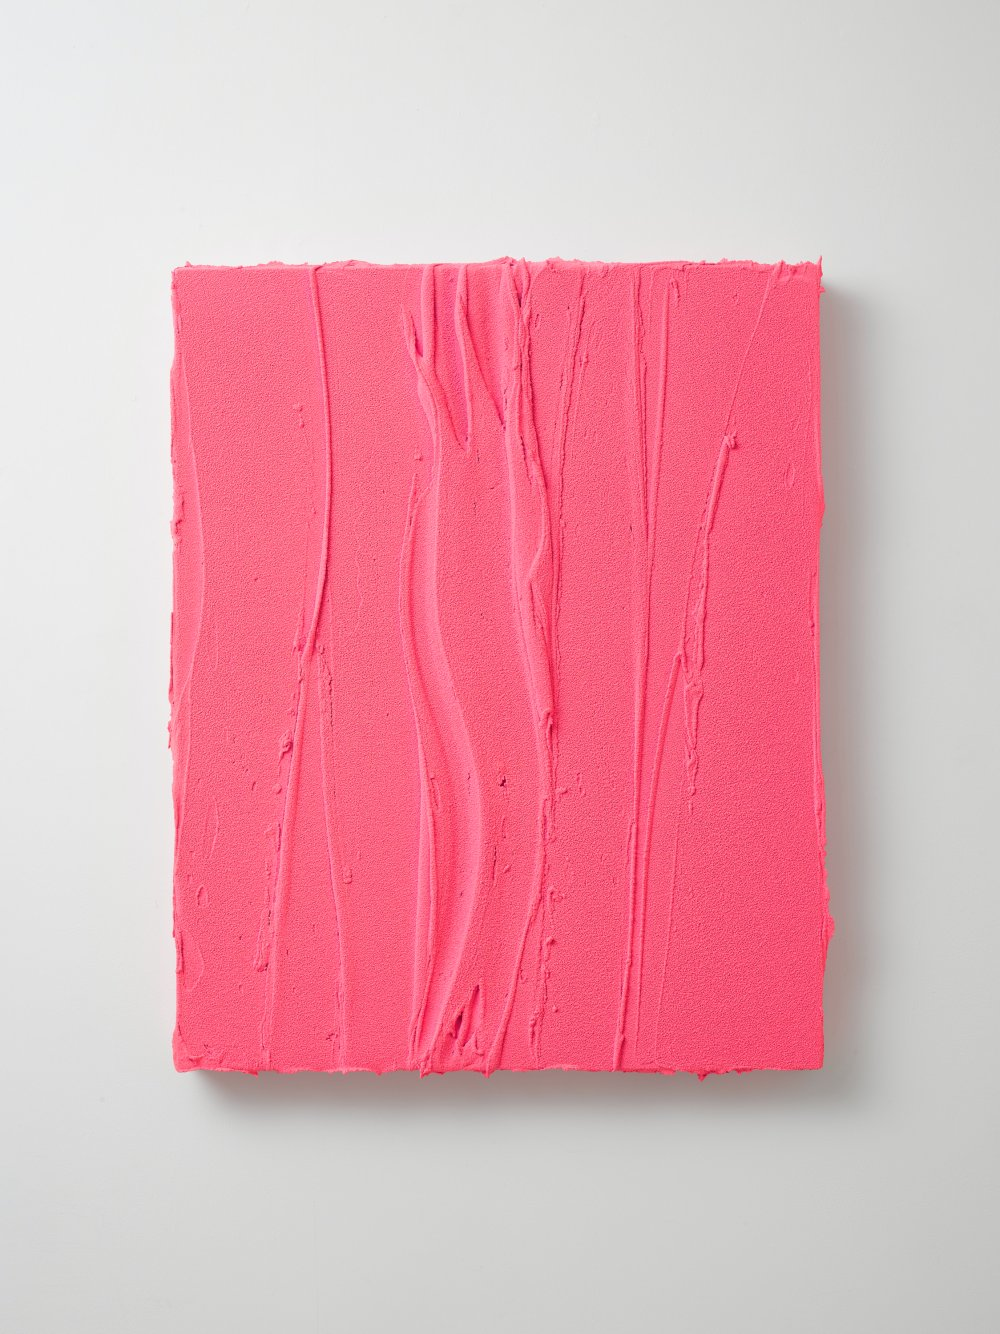 Untitled (Fluorescent pink / Rosso laccato)